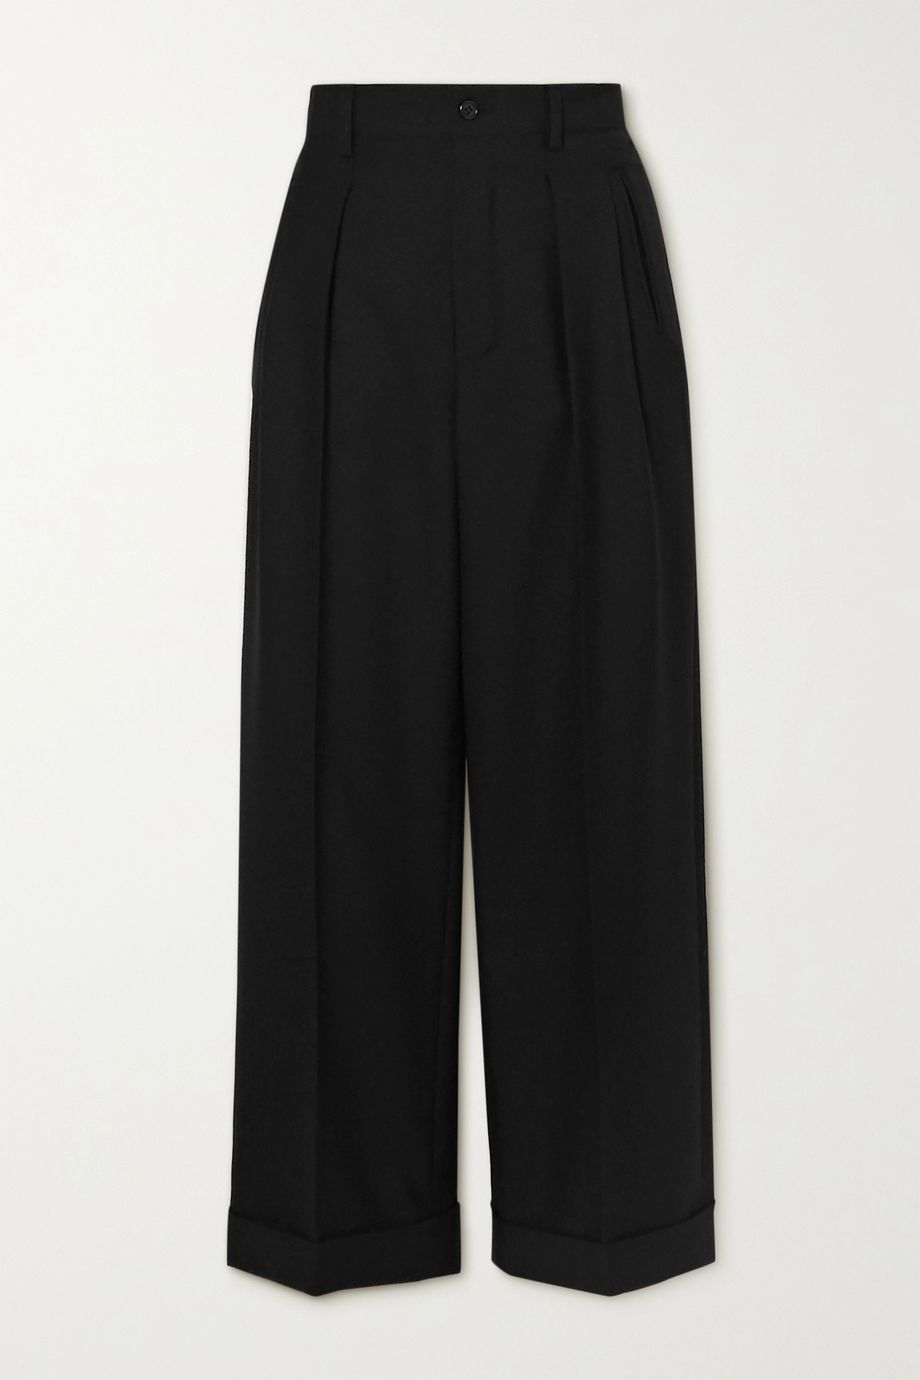 SAINT LAURENT Cropped pleated wool-gabardine straight-leg pants